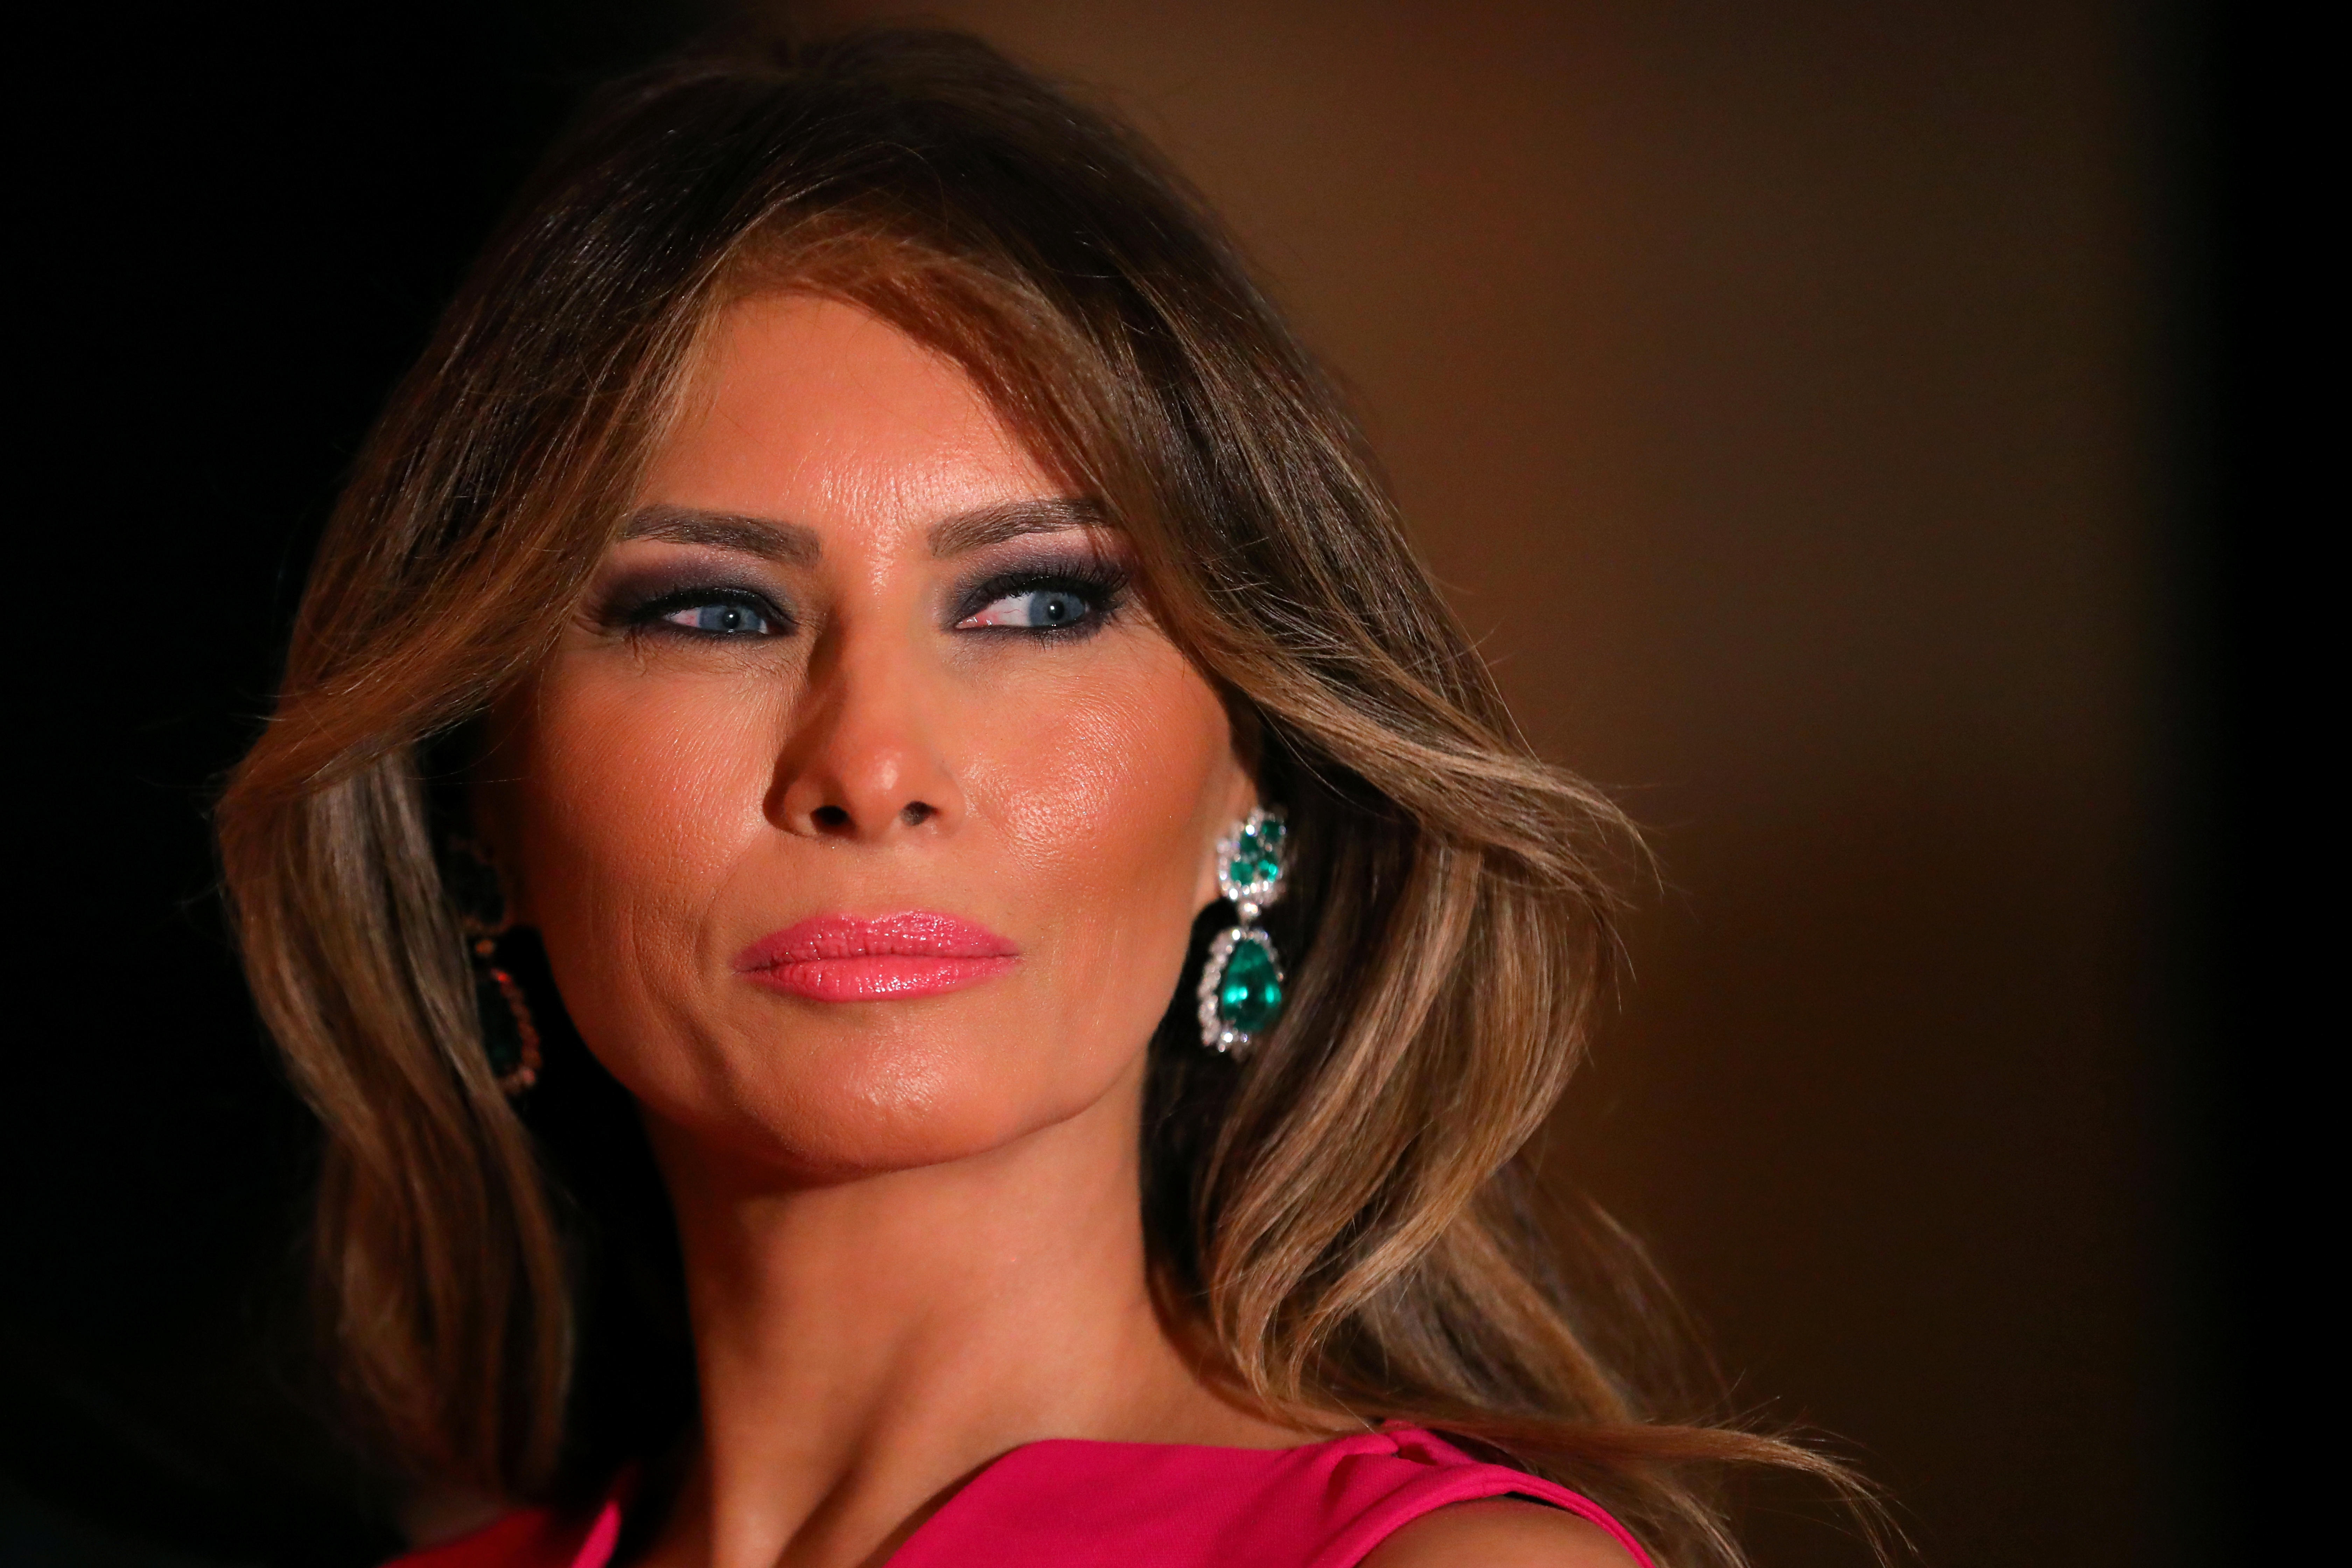 Melania Trump libel suit settled, another filed - CBS News